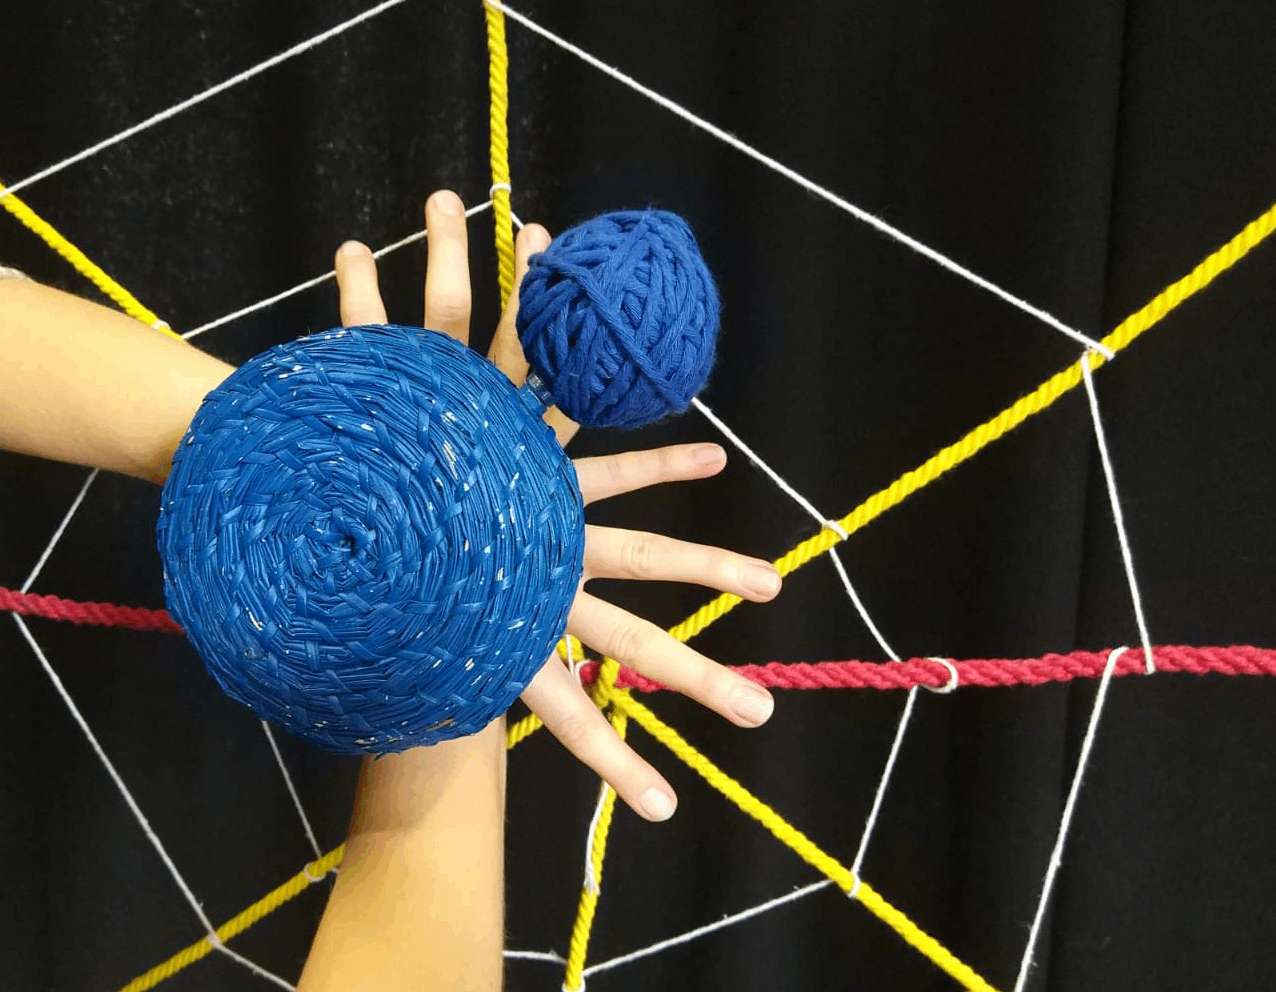 a spider's web made out of wool and string and a large blue spider made out of two hands with fingers splayed and blue baskets